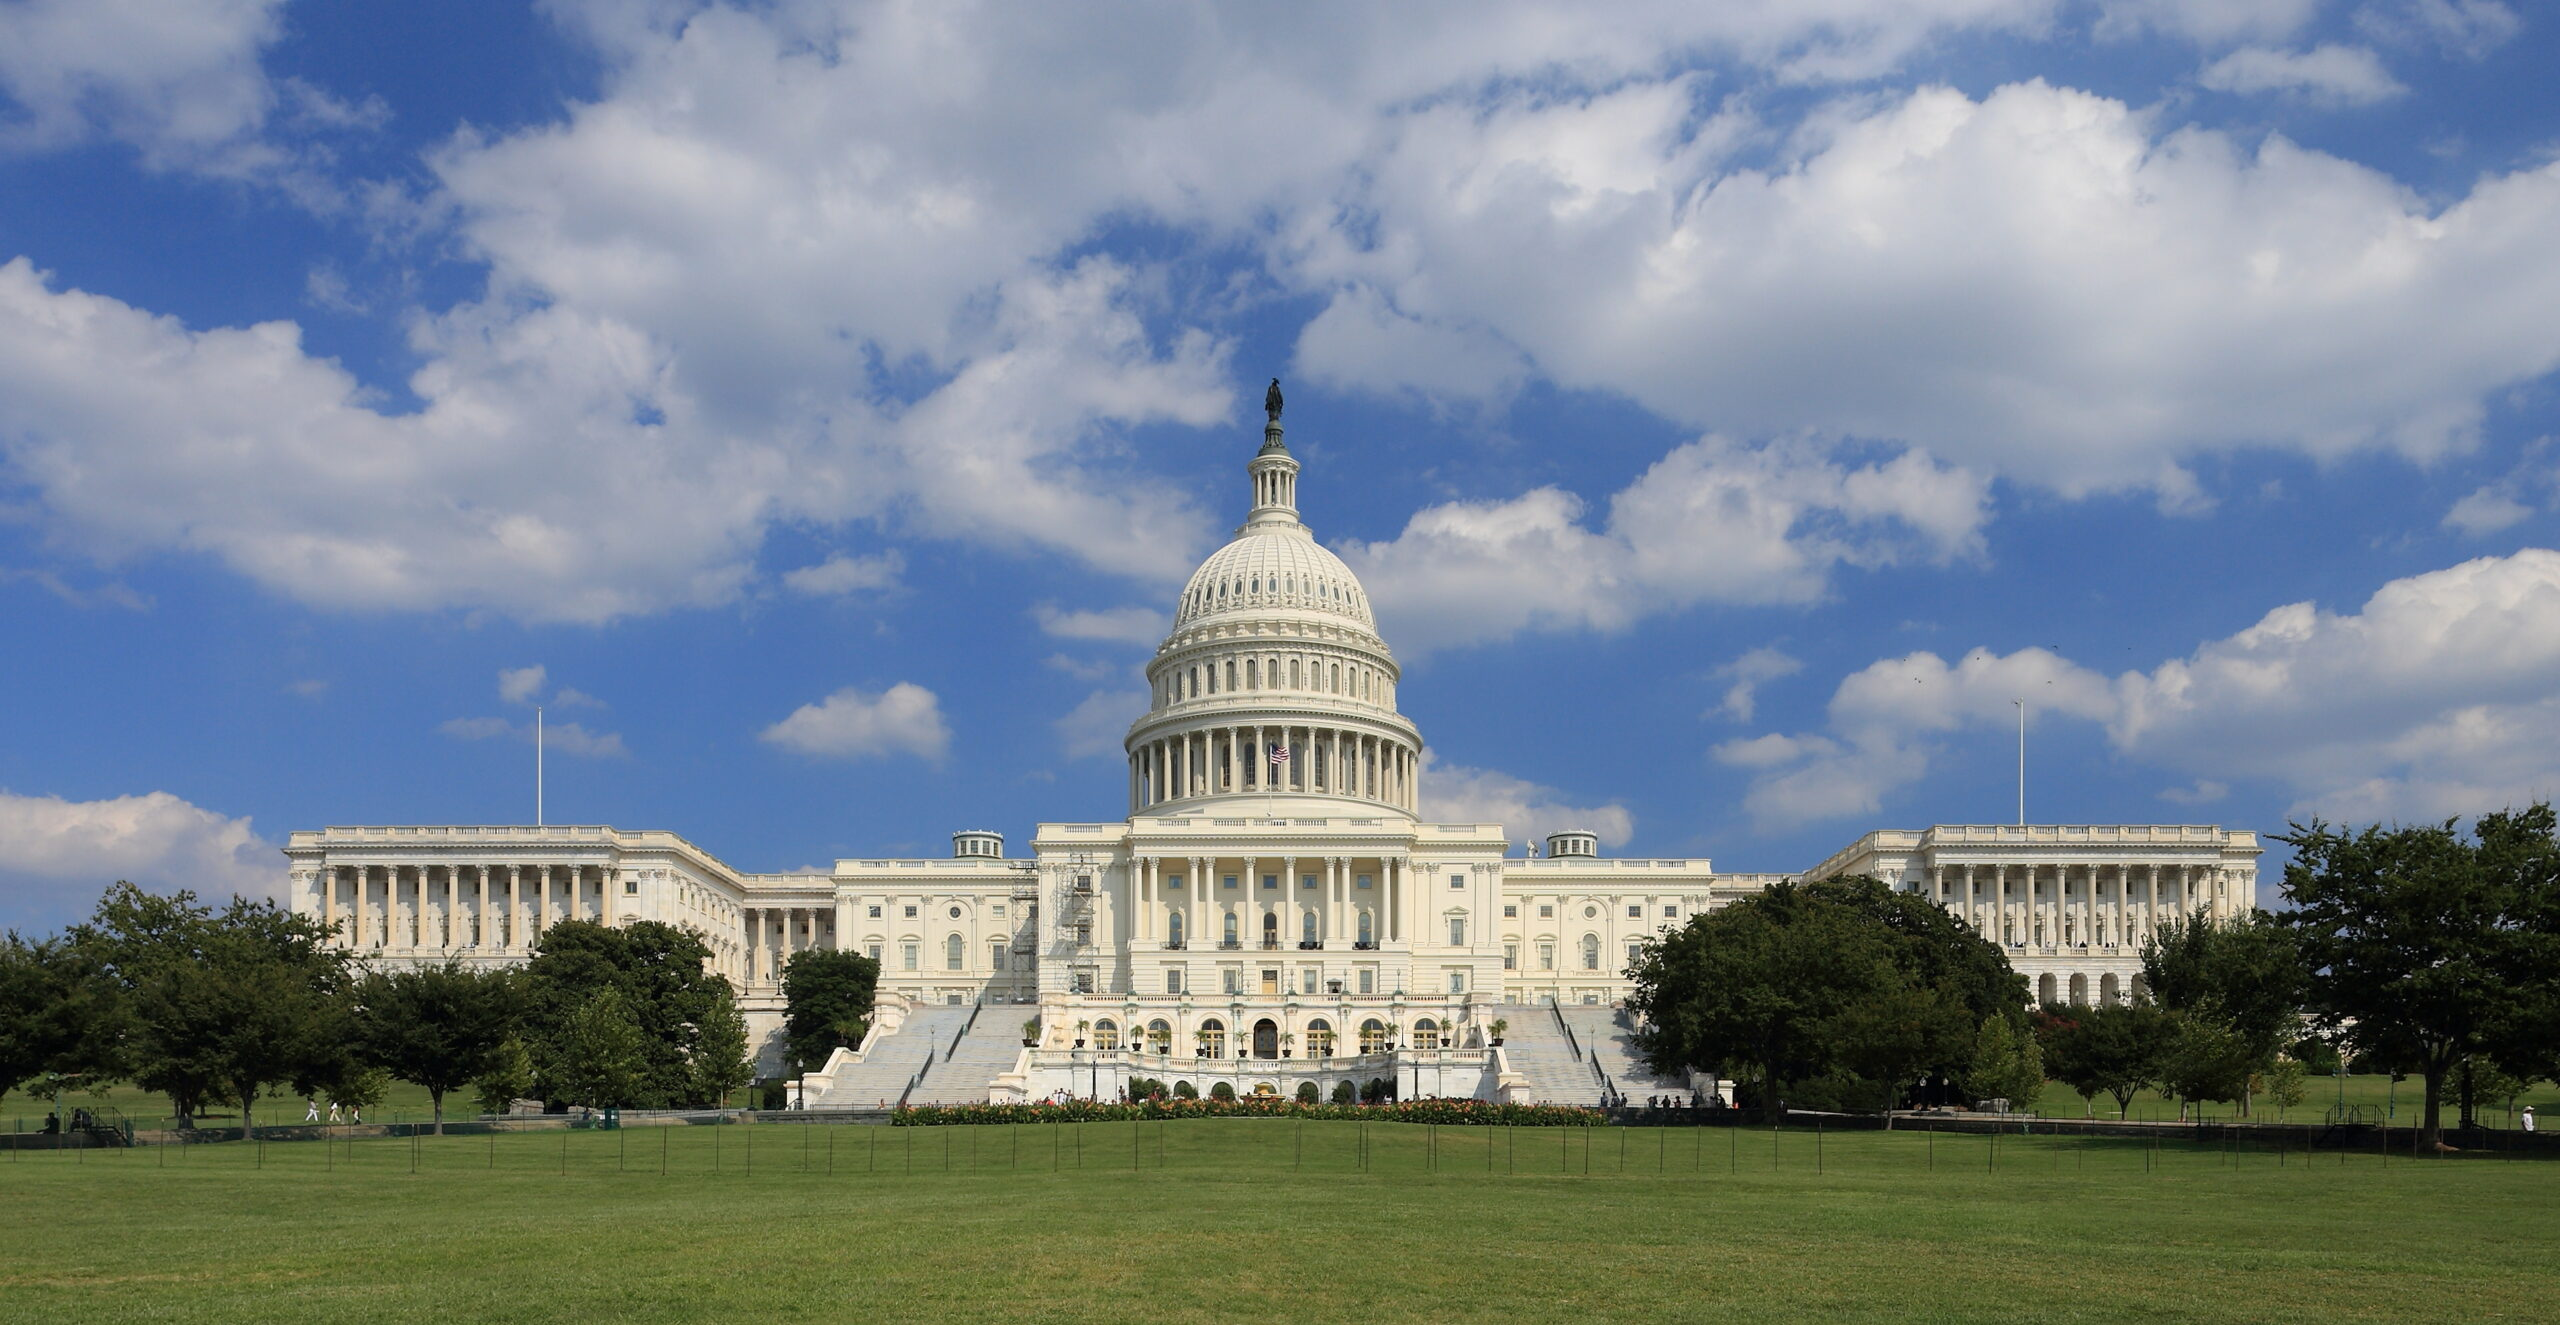 A Message from Our Director Regarding the Events at the US Capitol